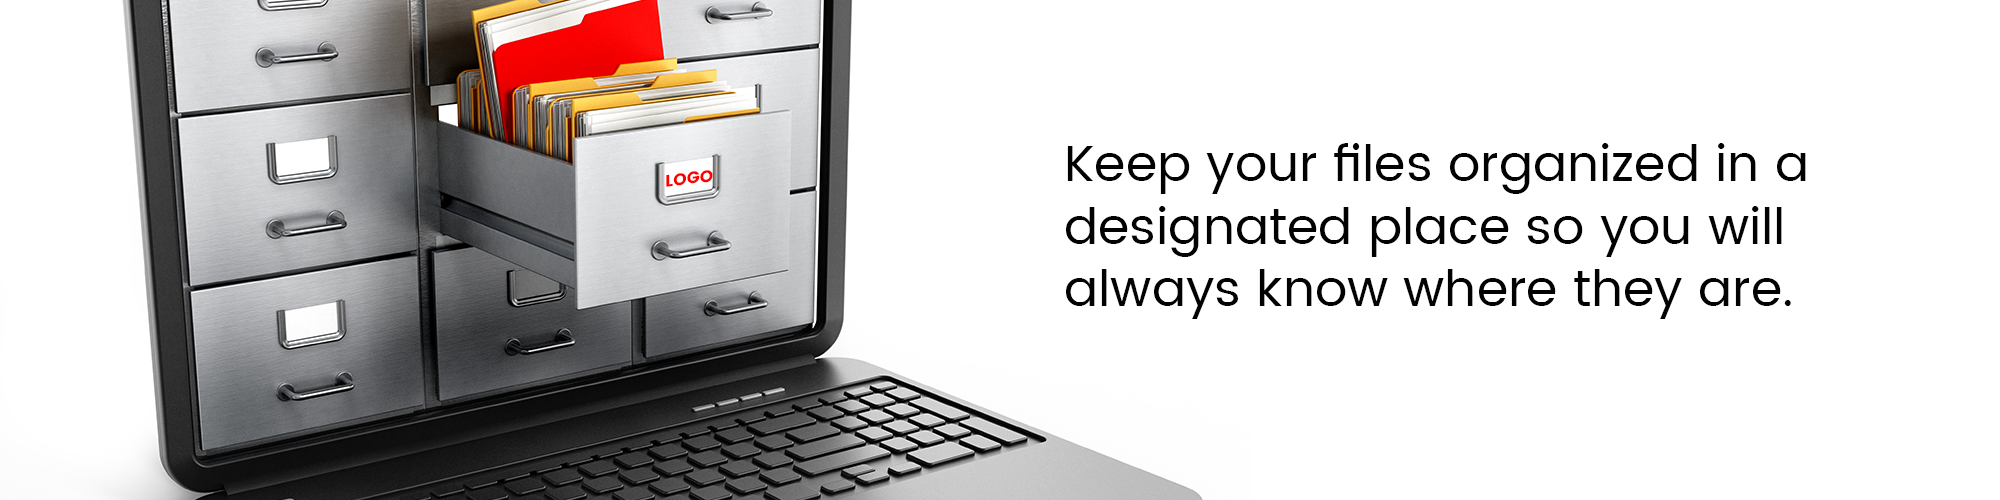 Keep your files organized in a designated place so you will always know where they are.